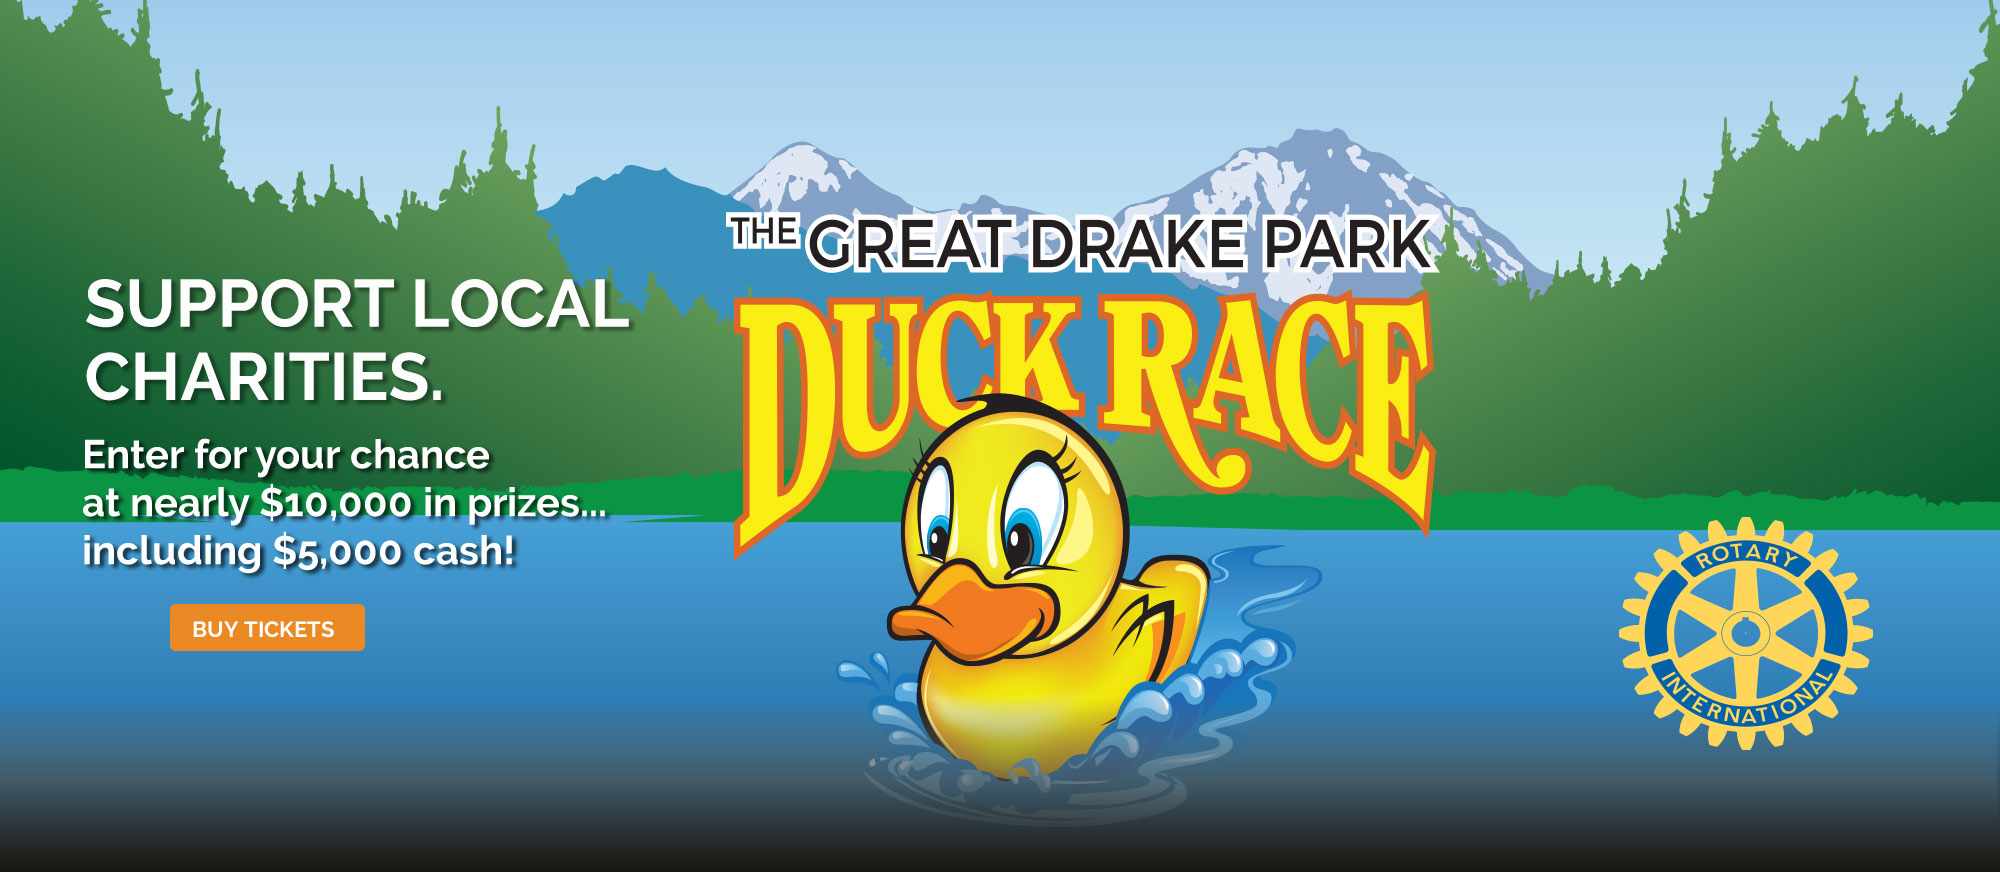 Drake Park Duck Race rubber duck logo